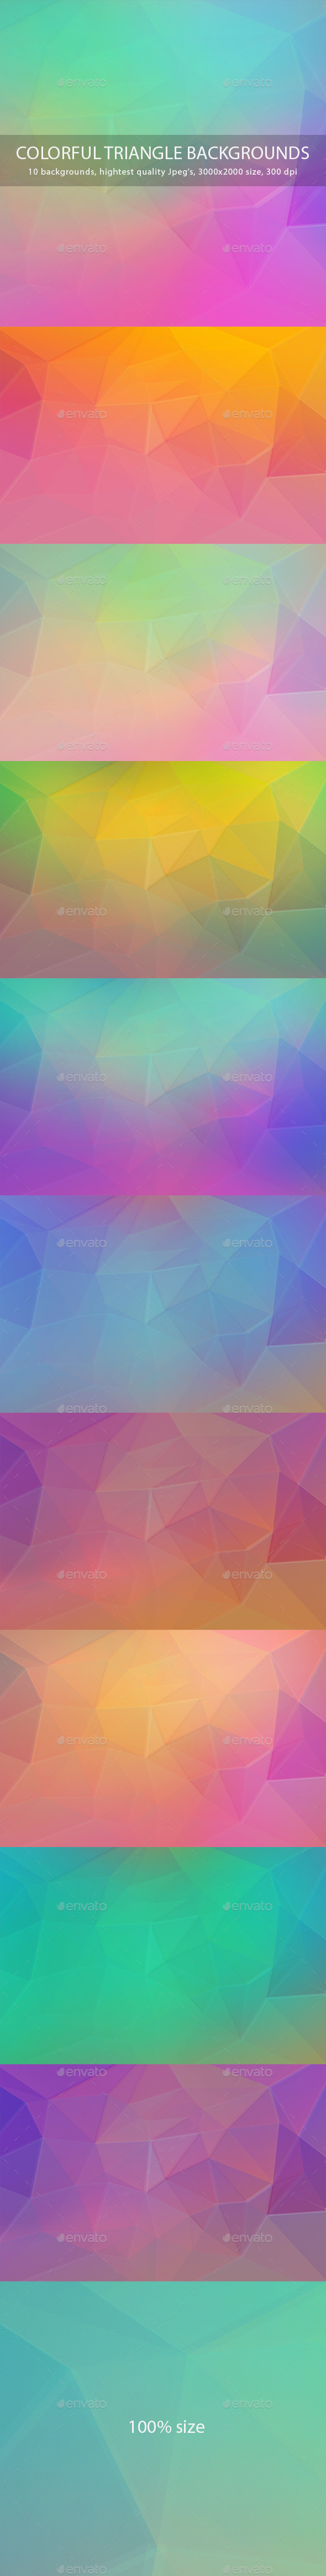 GraphicRiver Colorful Triangle Backgrounds 9593594